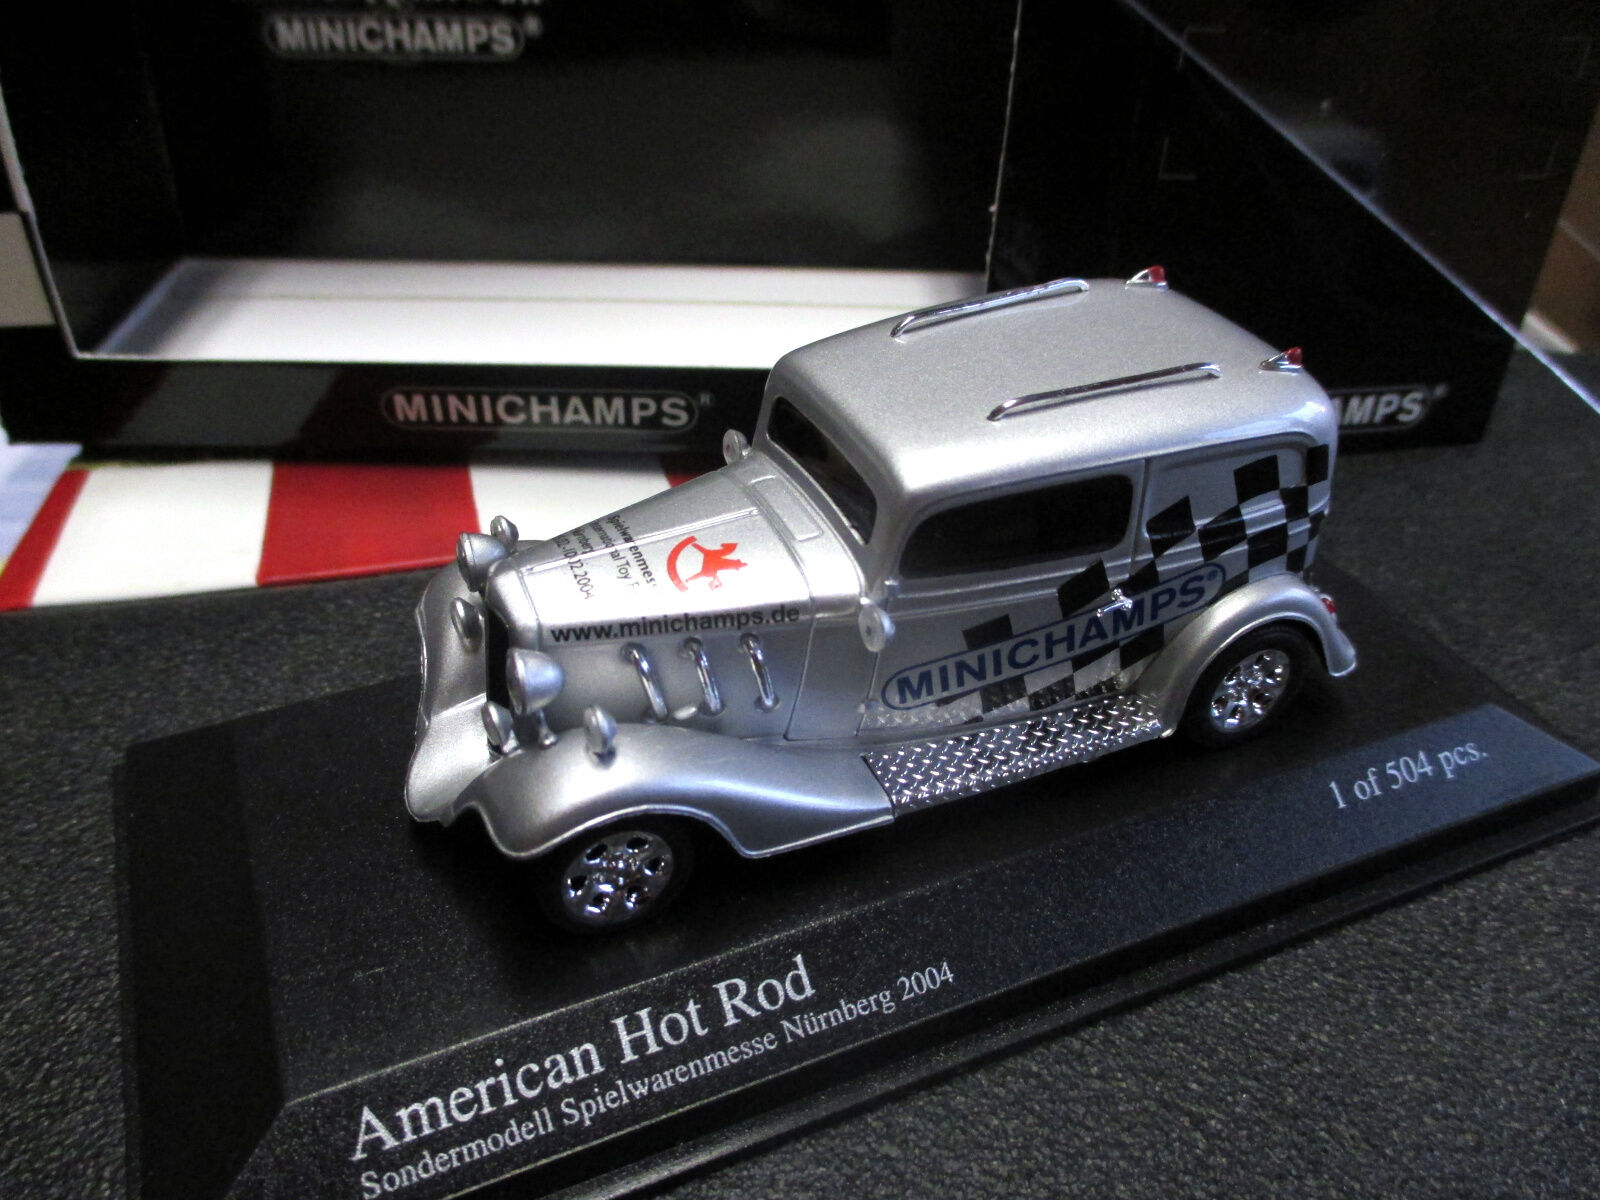 1 43 American Hot Rod Toy  Fair Model Nuremberg 2004 Minichamps Mint + Rare  jusqu'à 65% de réduction